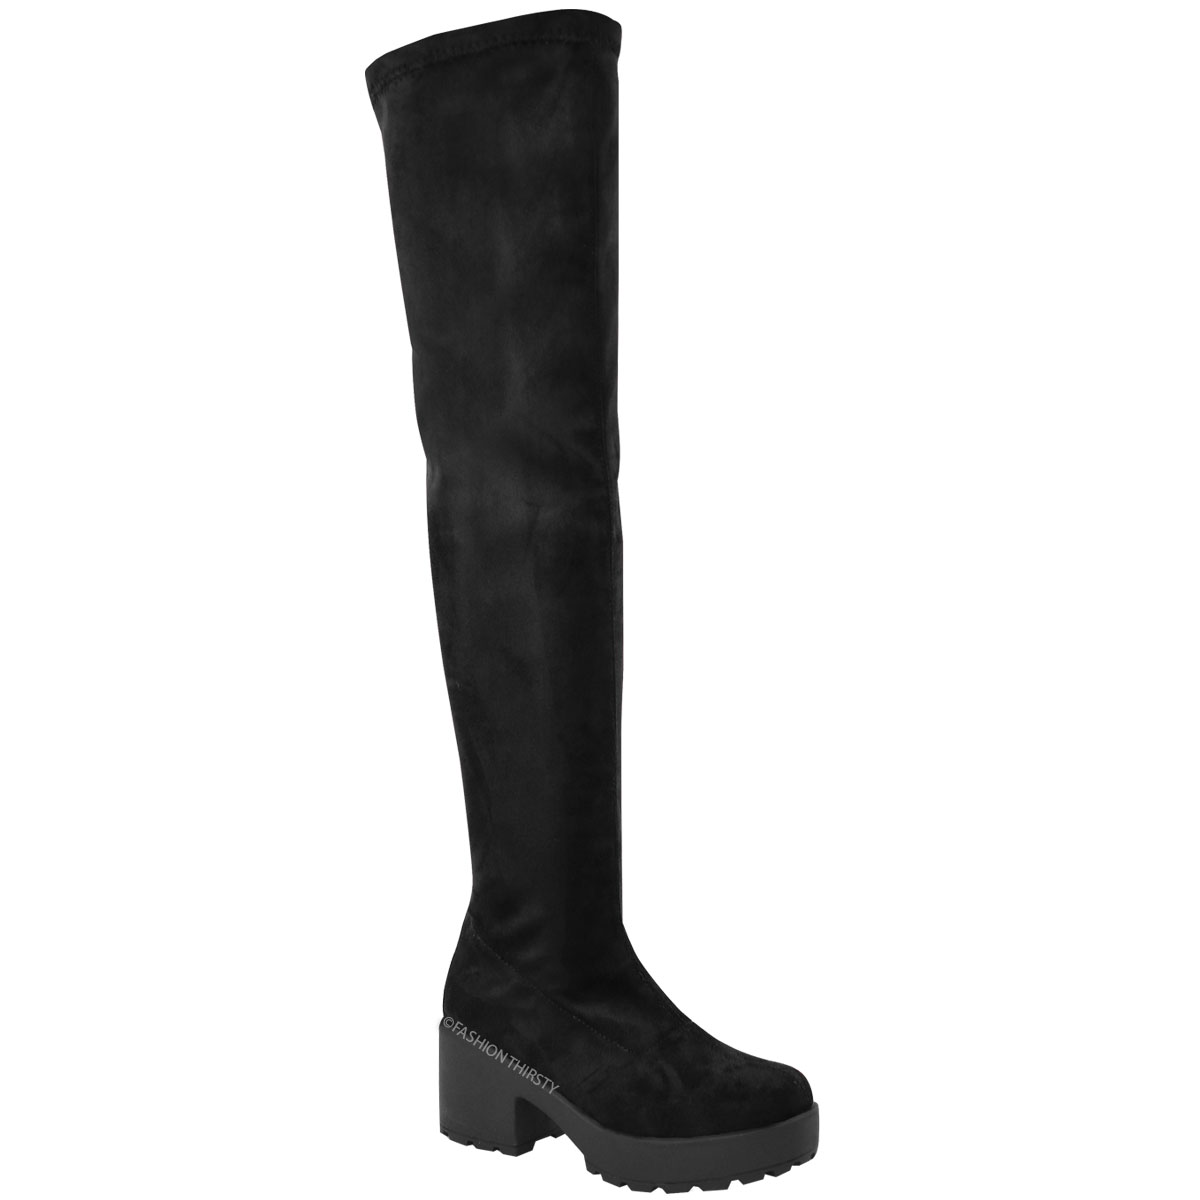 Find stretch fabric boots from a vast selection of Women's Shoes and Boots. Get great deals on eBay!